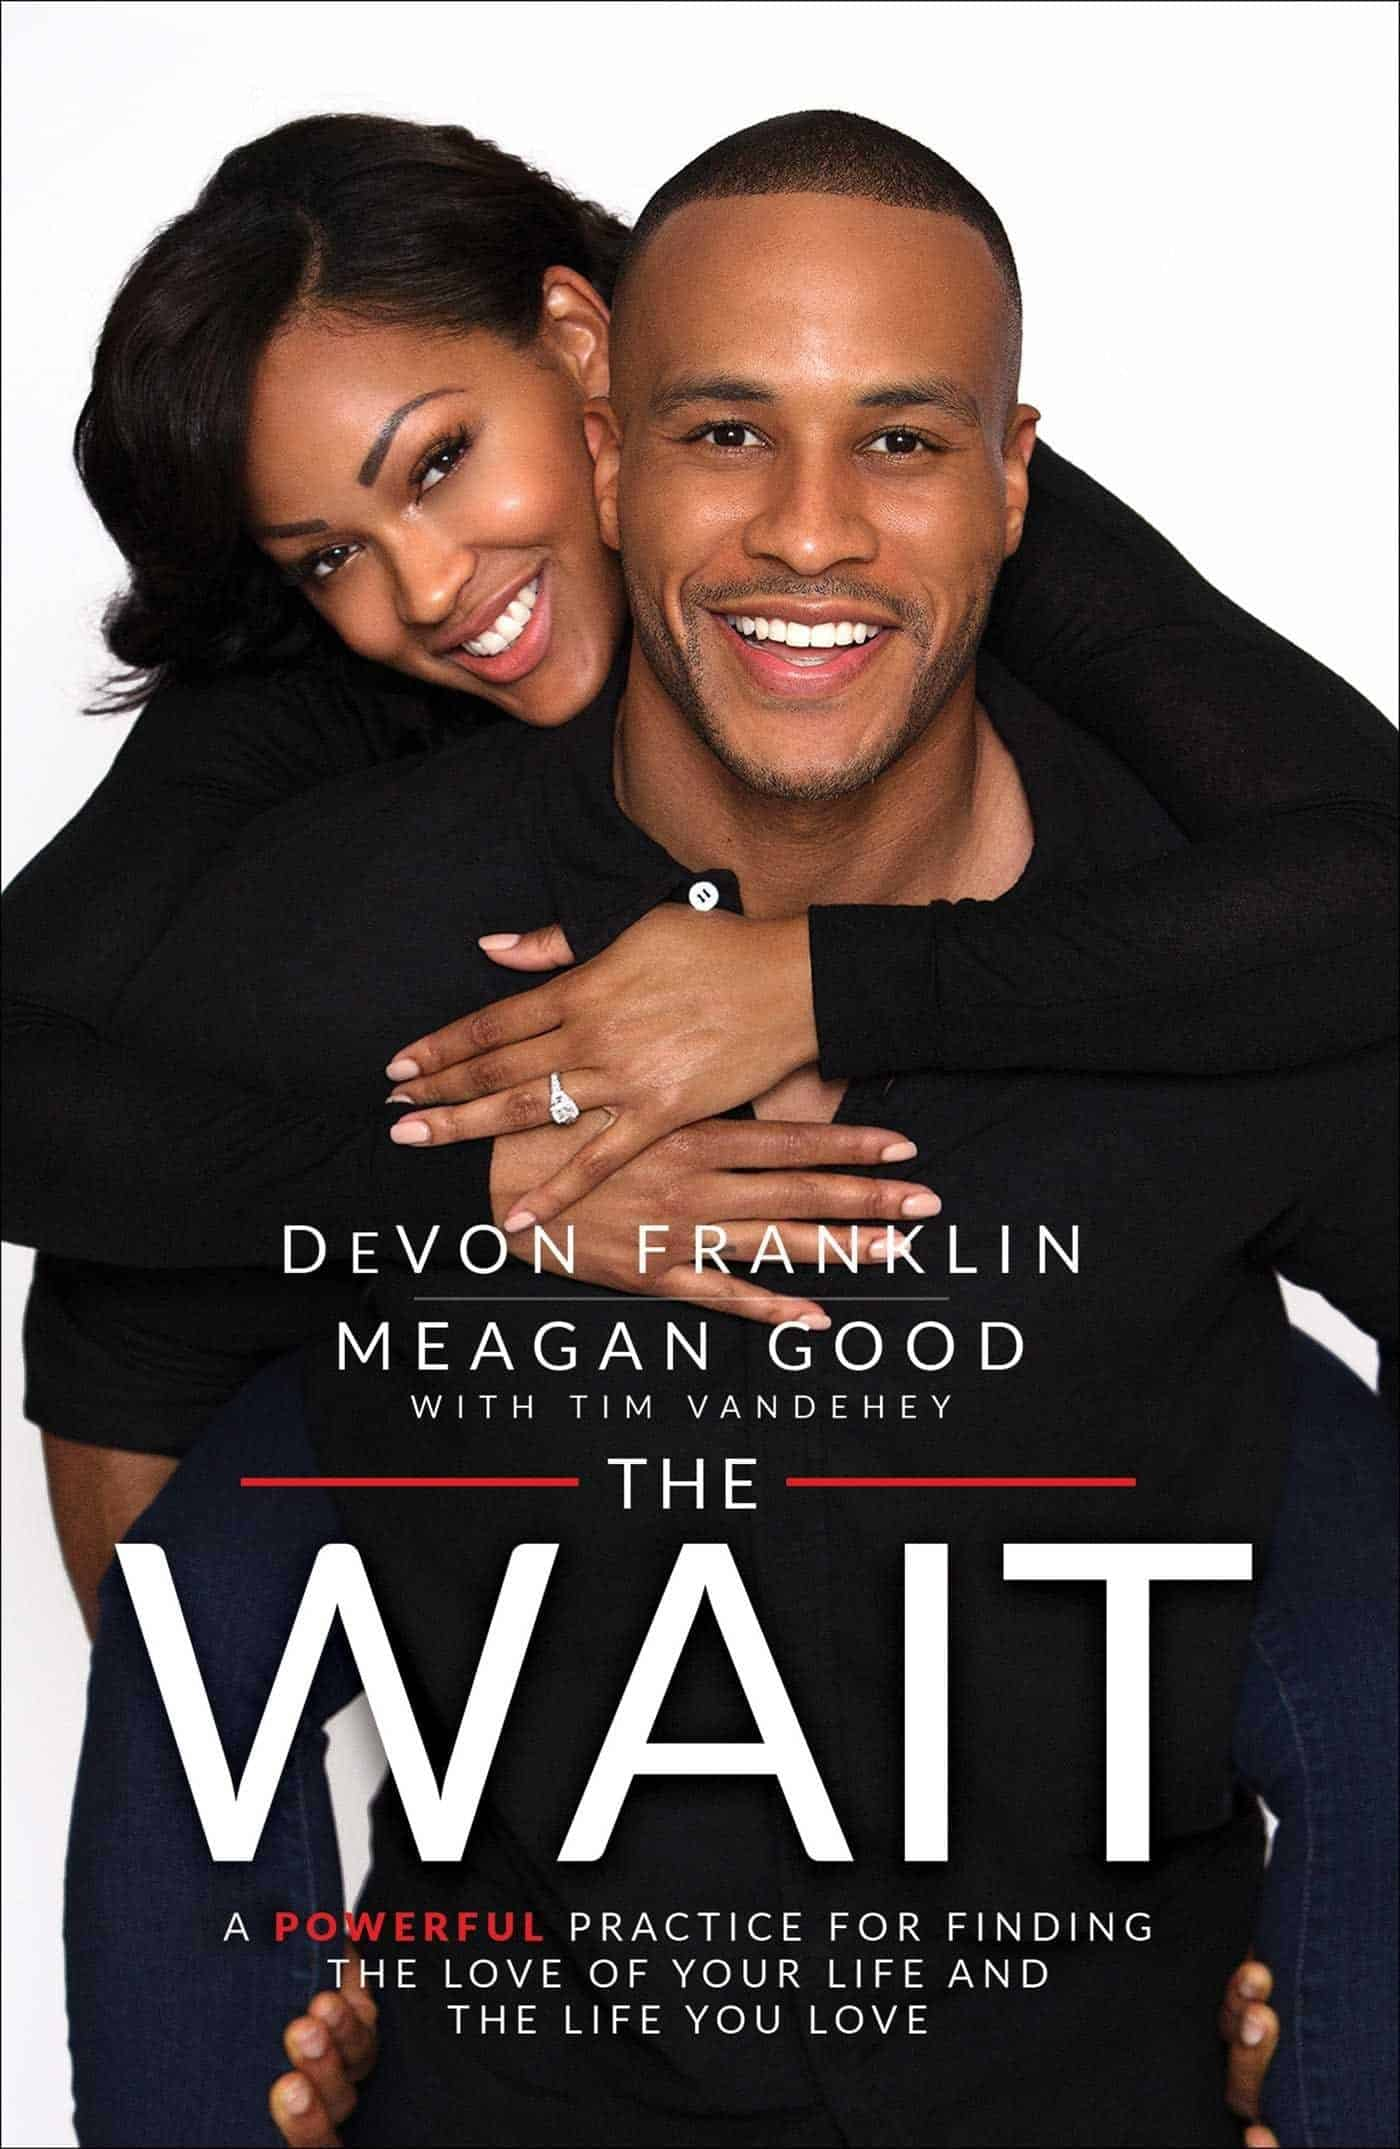 relationship book by black authors - The Wait